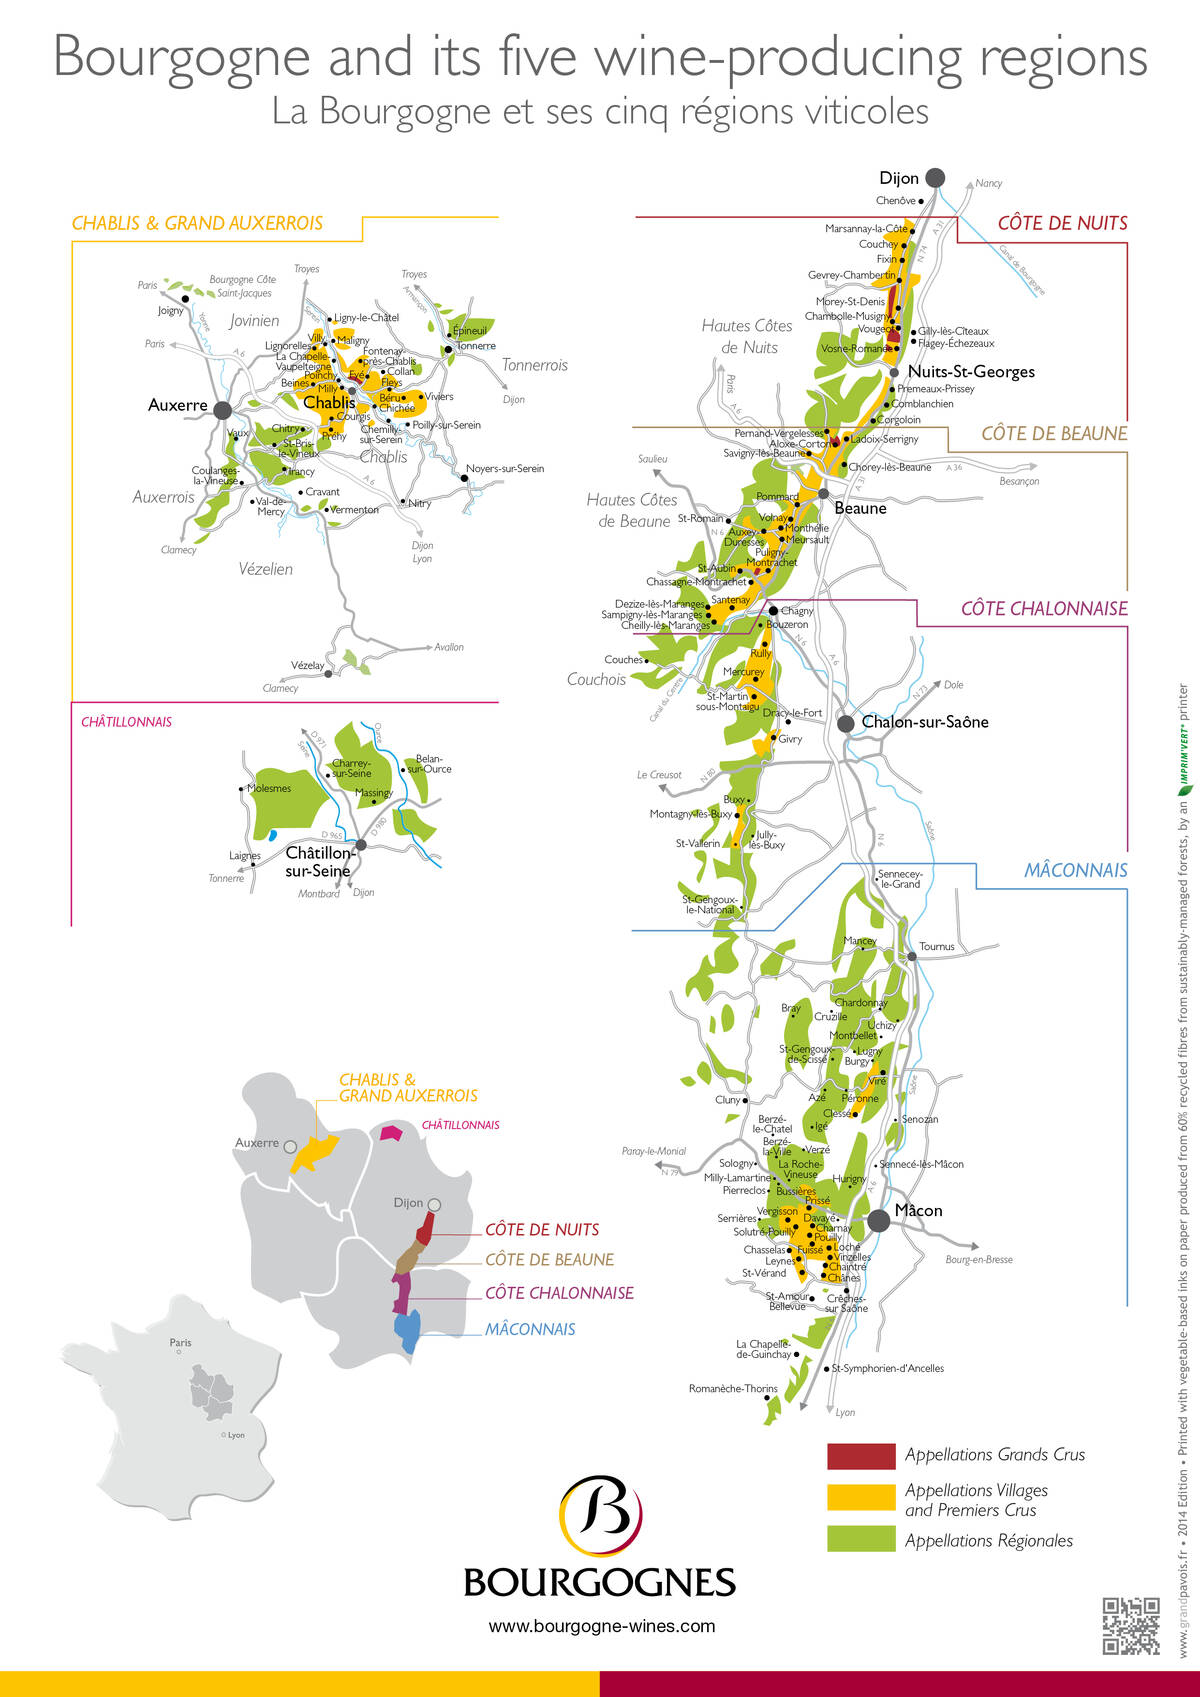 map of et hotels with Burgundy Wine Map on Carte plan Syrie together with Vanille additionally Gr65h likewise Objet 2 as well Kalamata.